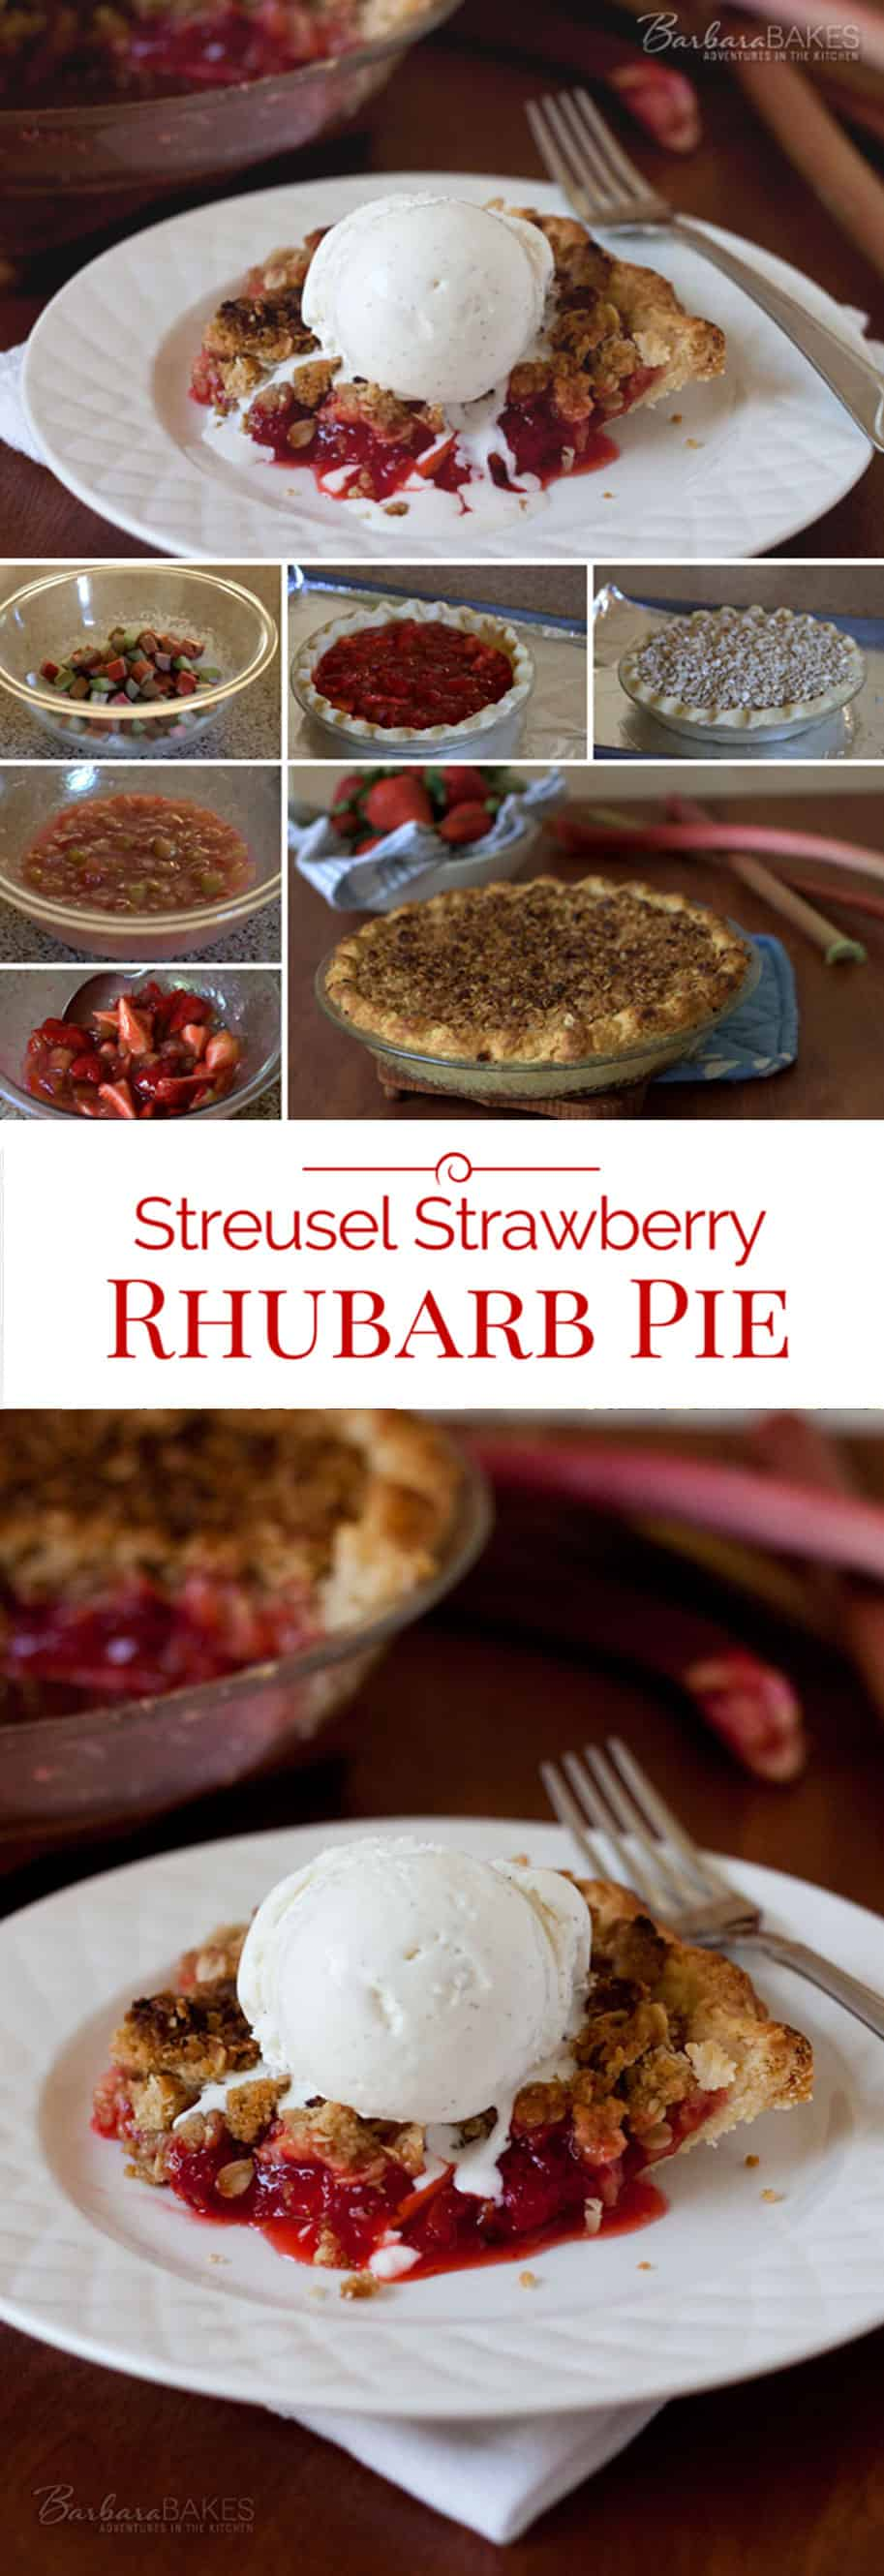 Strawberry-Rhubarb-Pie-Collage-2-Barbara-Bakes